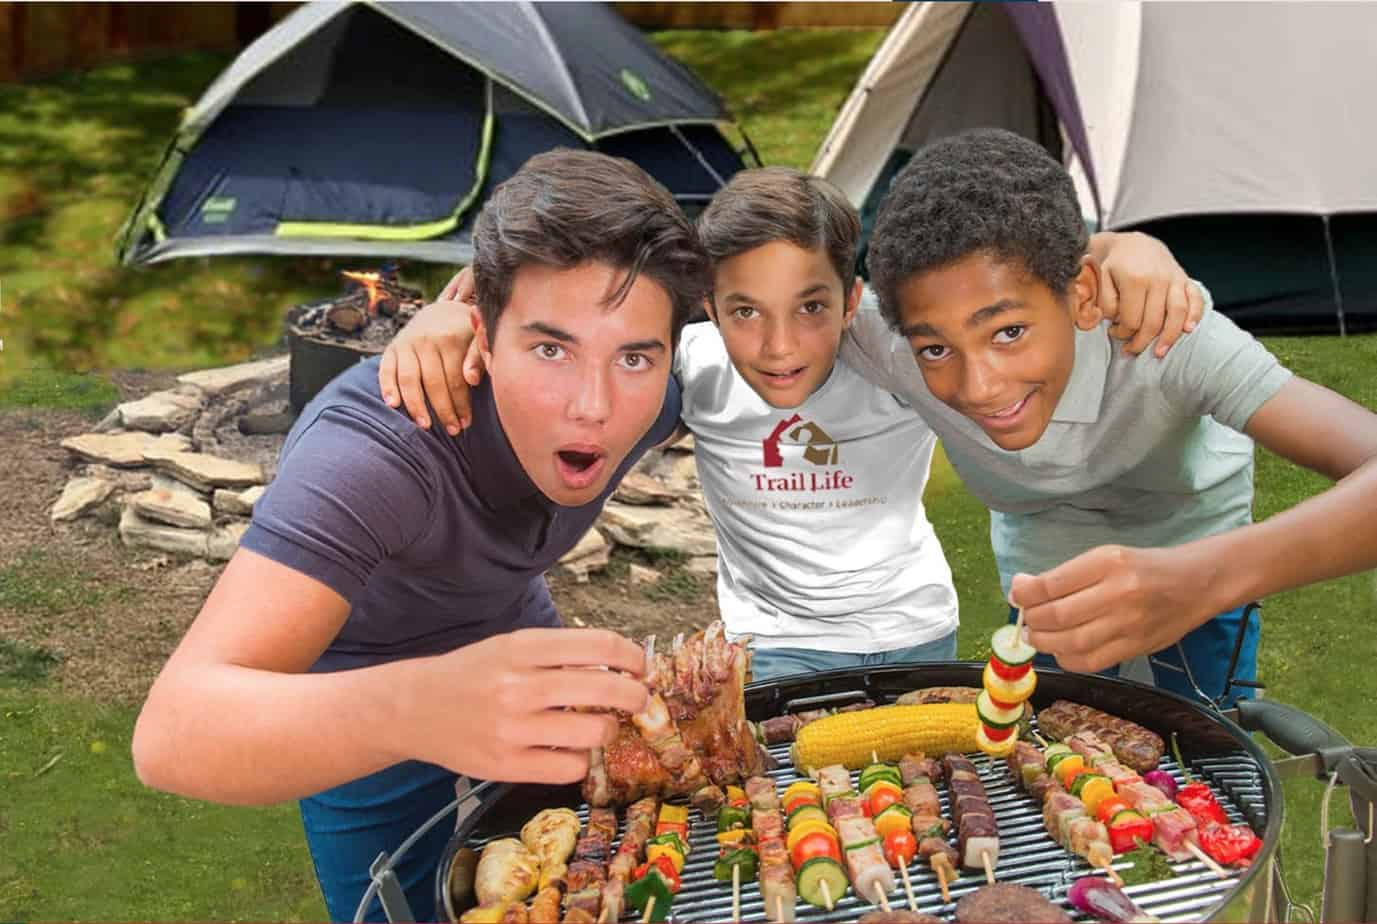 Trail Life USA calls Americans to 'invite someone different' to their Fourth of July cookout